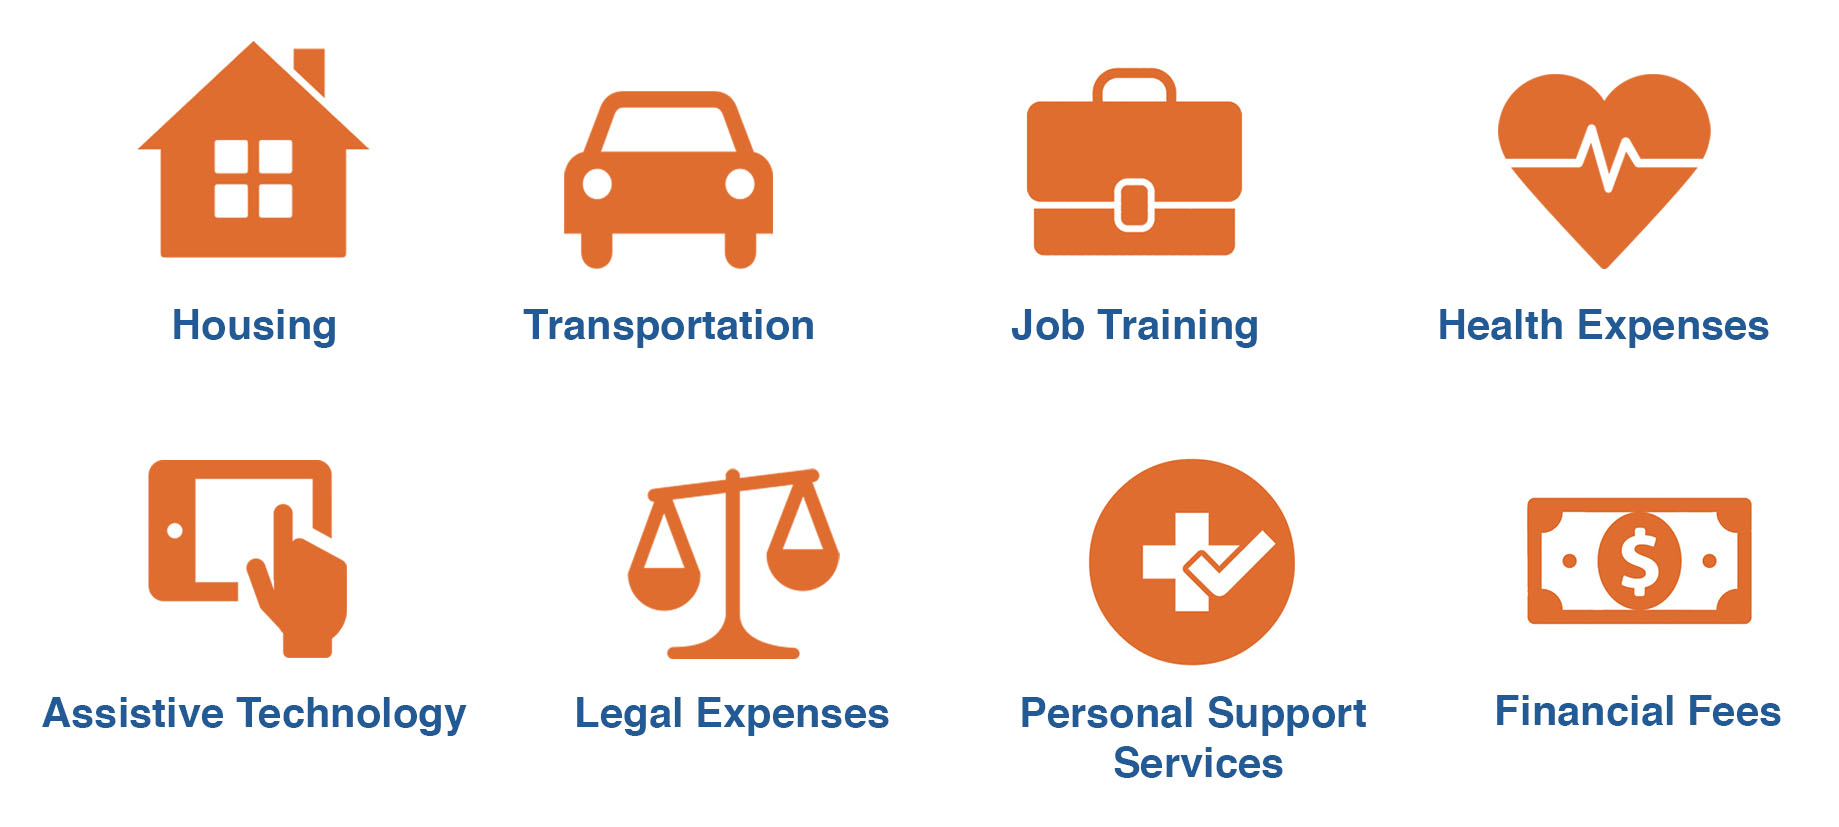 Image showing disability related expenses that ABLE Accounts can cover including Housing, Transportation, Job Training, Health Expenses, Assistive Technology, Legal Expenses, Personal Support Services and Financial Fees.